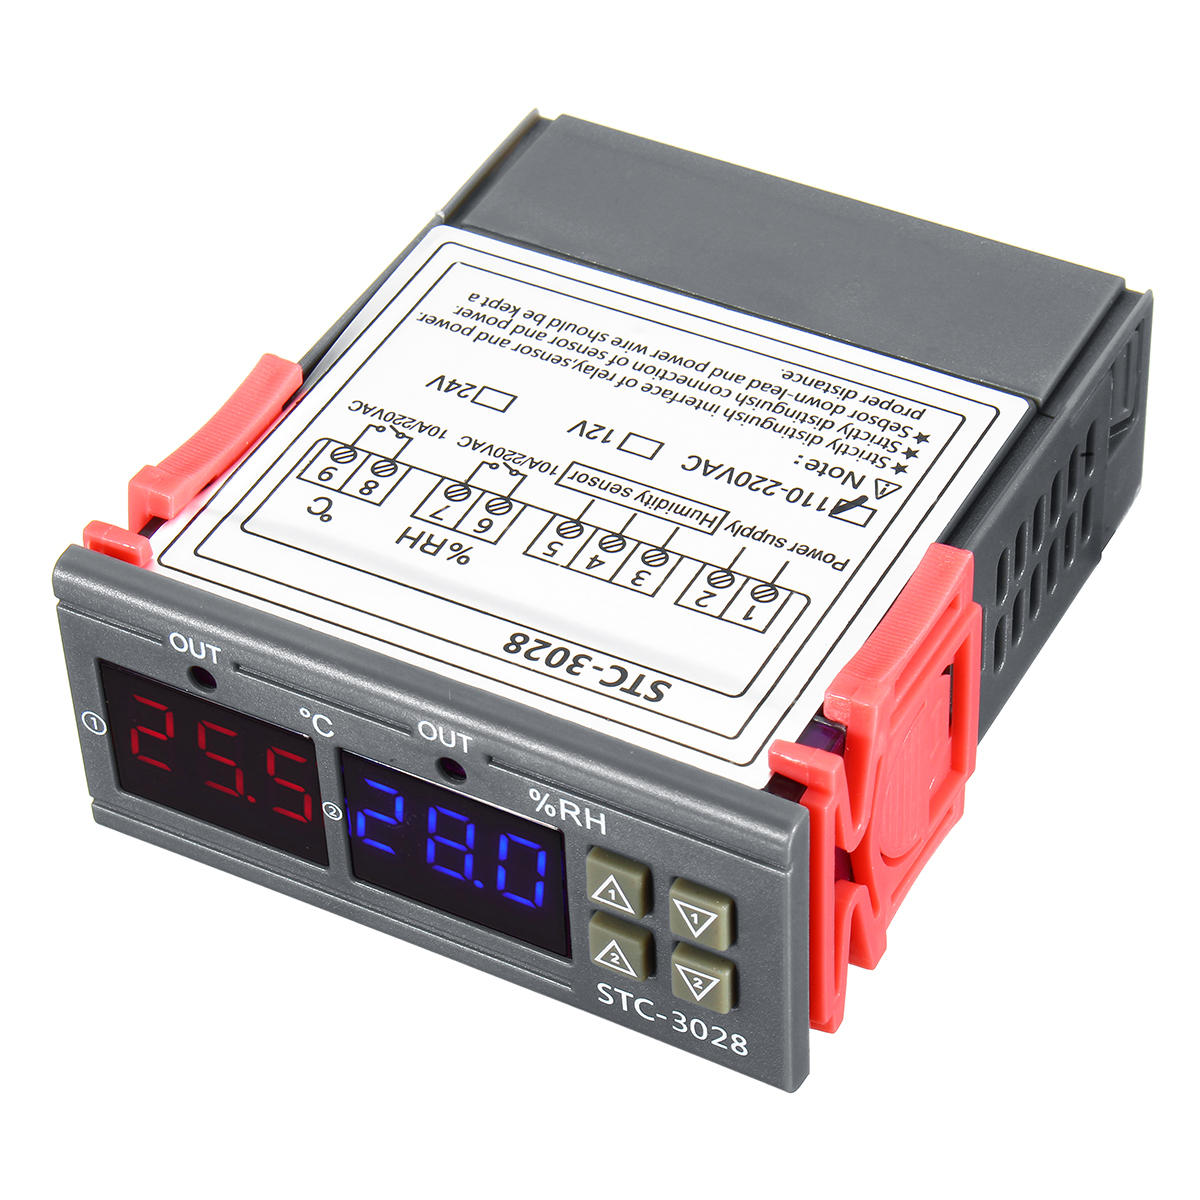 110-220V STC-3018 Digital Temperature Thermostat Controller With Setting Function Value Display C/F Conversion